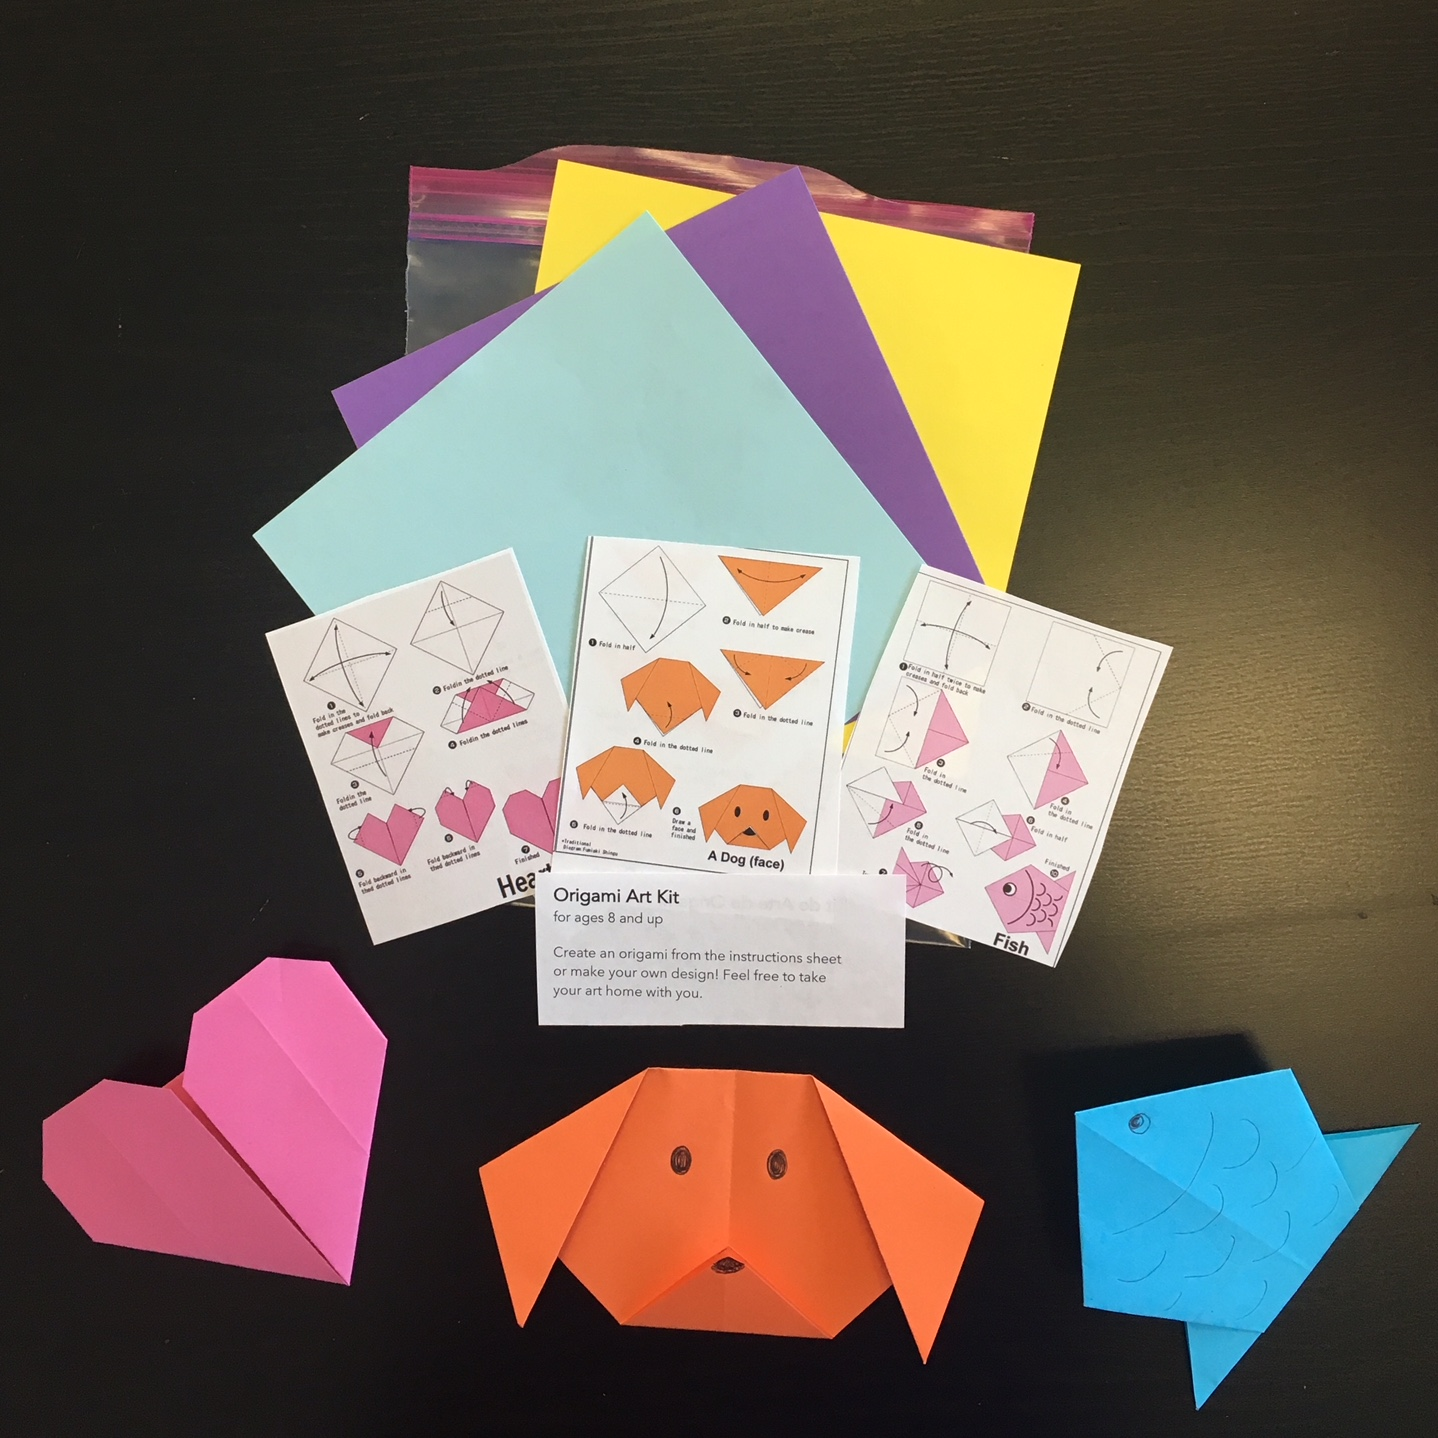 Origami Art Kit (ages 8 and up)